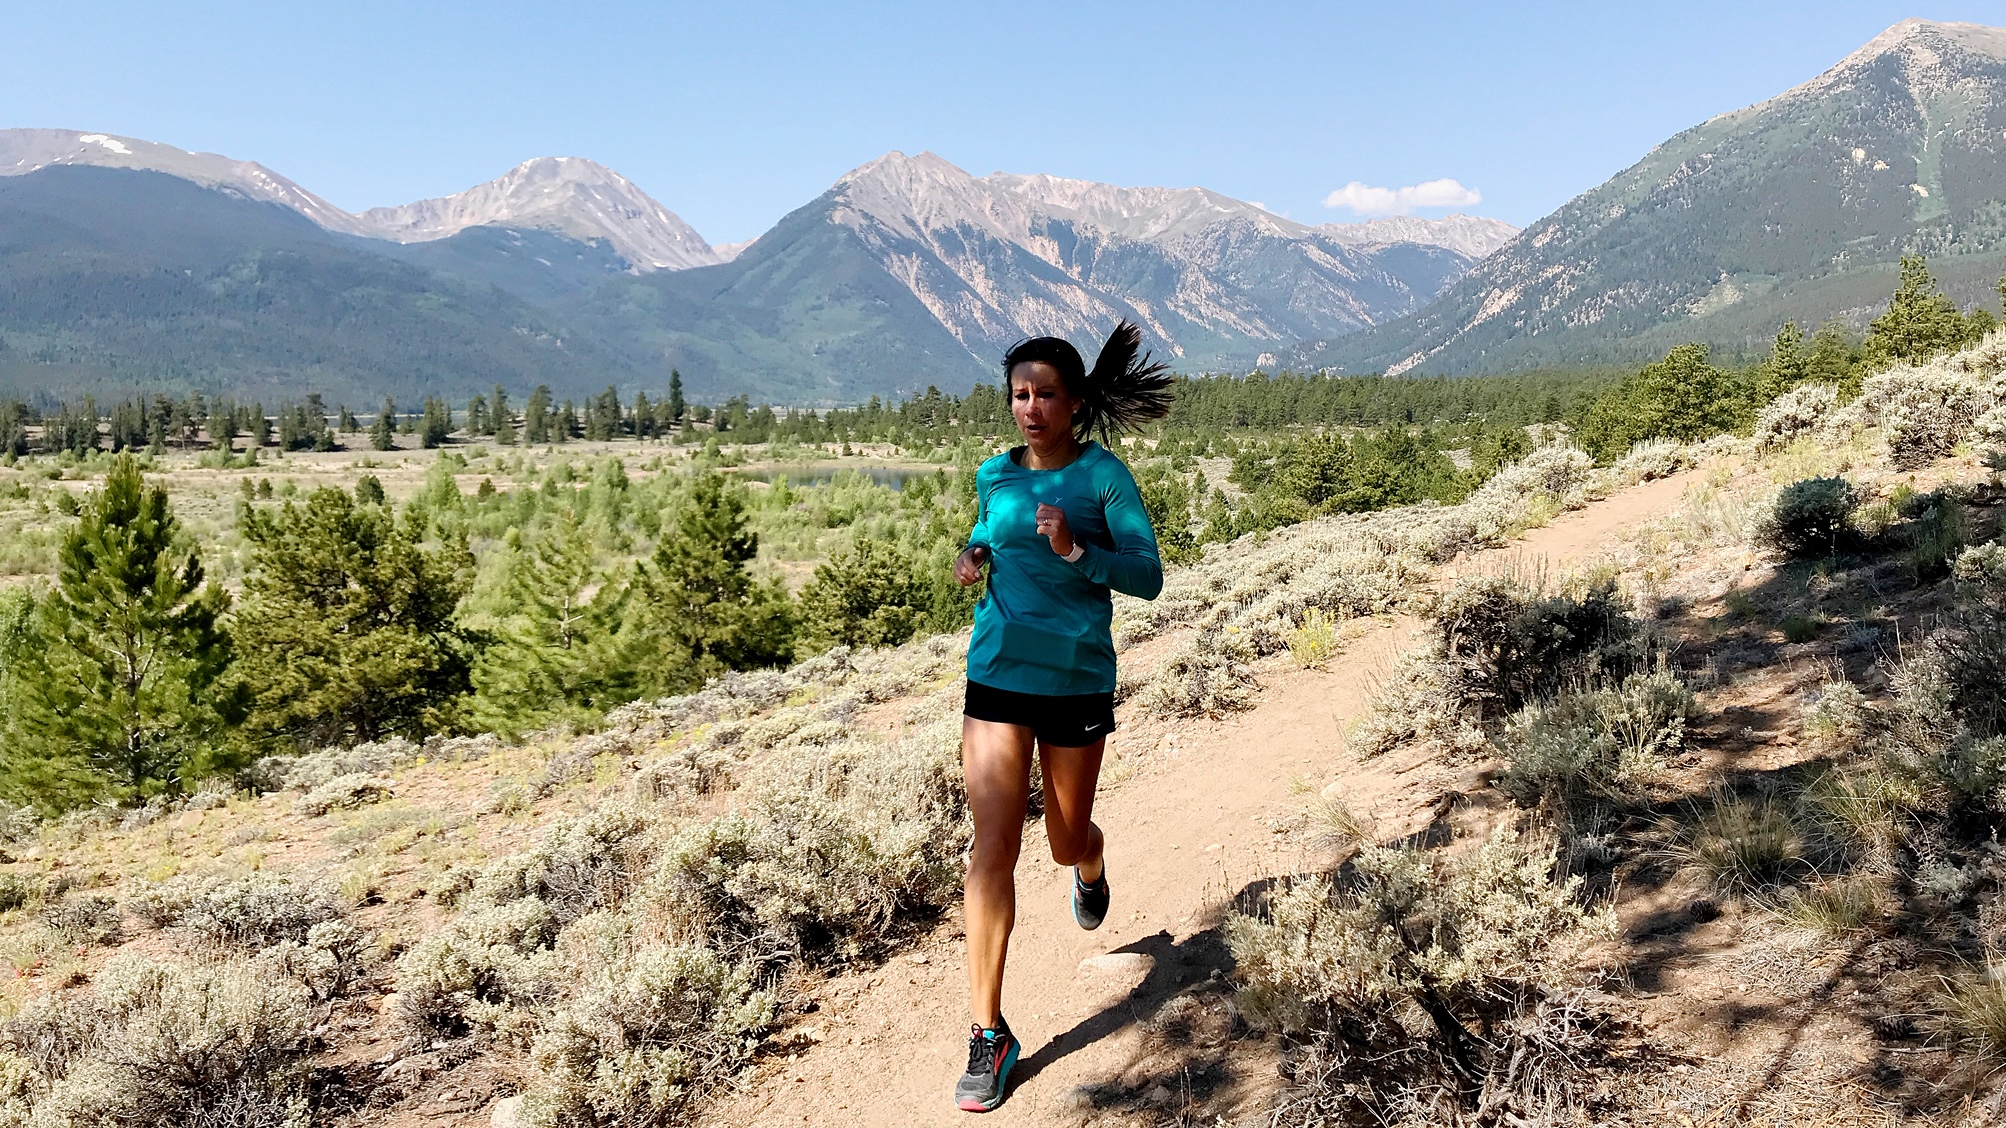 """Vanessa Carter - """"I've been a runner for 30 years. It has been my hobby, my stress reliever, and my time to reflect. That all changed two years ago when I took a devastating 18 foot fall while bouldering. All of the impact was concentrated in my left knee and there was extensive damage. My patellar tendon and ACL were completely severed. My femoral head was fractured and a one inch chunk of cartilage broke away from my femur. My meniscus was also extremely damaged. After four surgeries I was told by my doctor that I would never be able to run again. After 18 months of rehab and physical therapy, I decided I wanted to try running again. I had a long conversation with Coach Carter at Ready for Change Running (who also happens to be my husband of over 22 years), and he helped devise a plan to get me running again. He helped me rebuild my running form, gain back my strength and confidence, and most importantly helped me gain back what I thought was forever lost. No matter where you are in your life, Ready for Change Running can help change your life through running"""""""